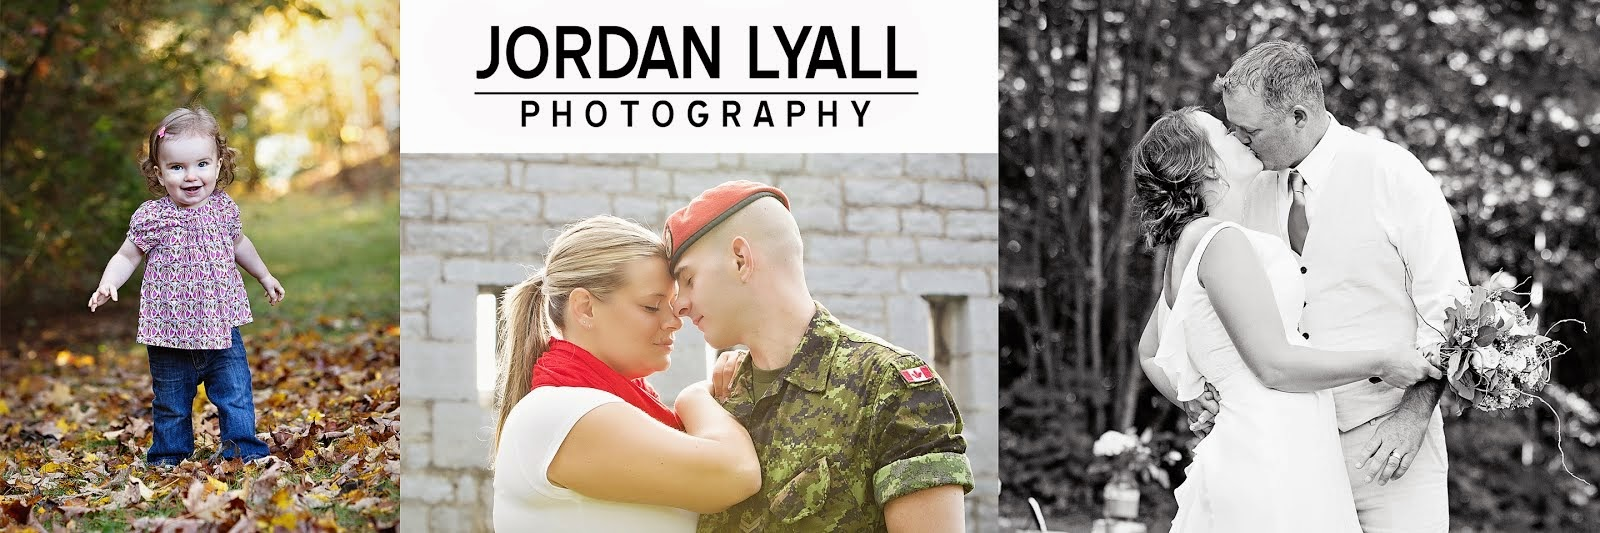 Jordan Lyall Photography.  Beautiful Moments deserve Beautiful Photographs.